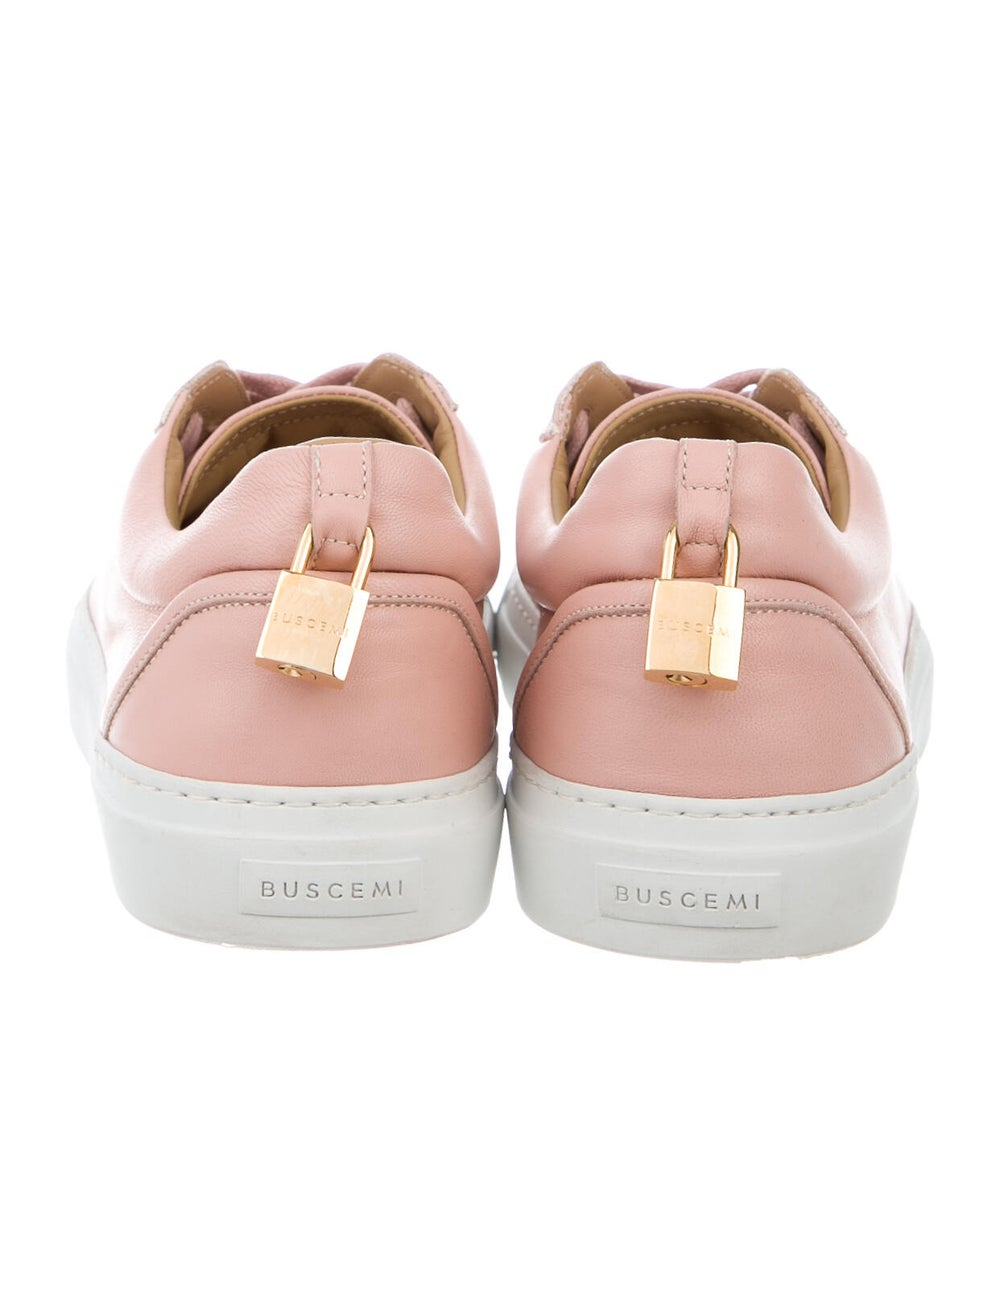 Buscemi Leather Sneakers Pink - image 4